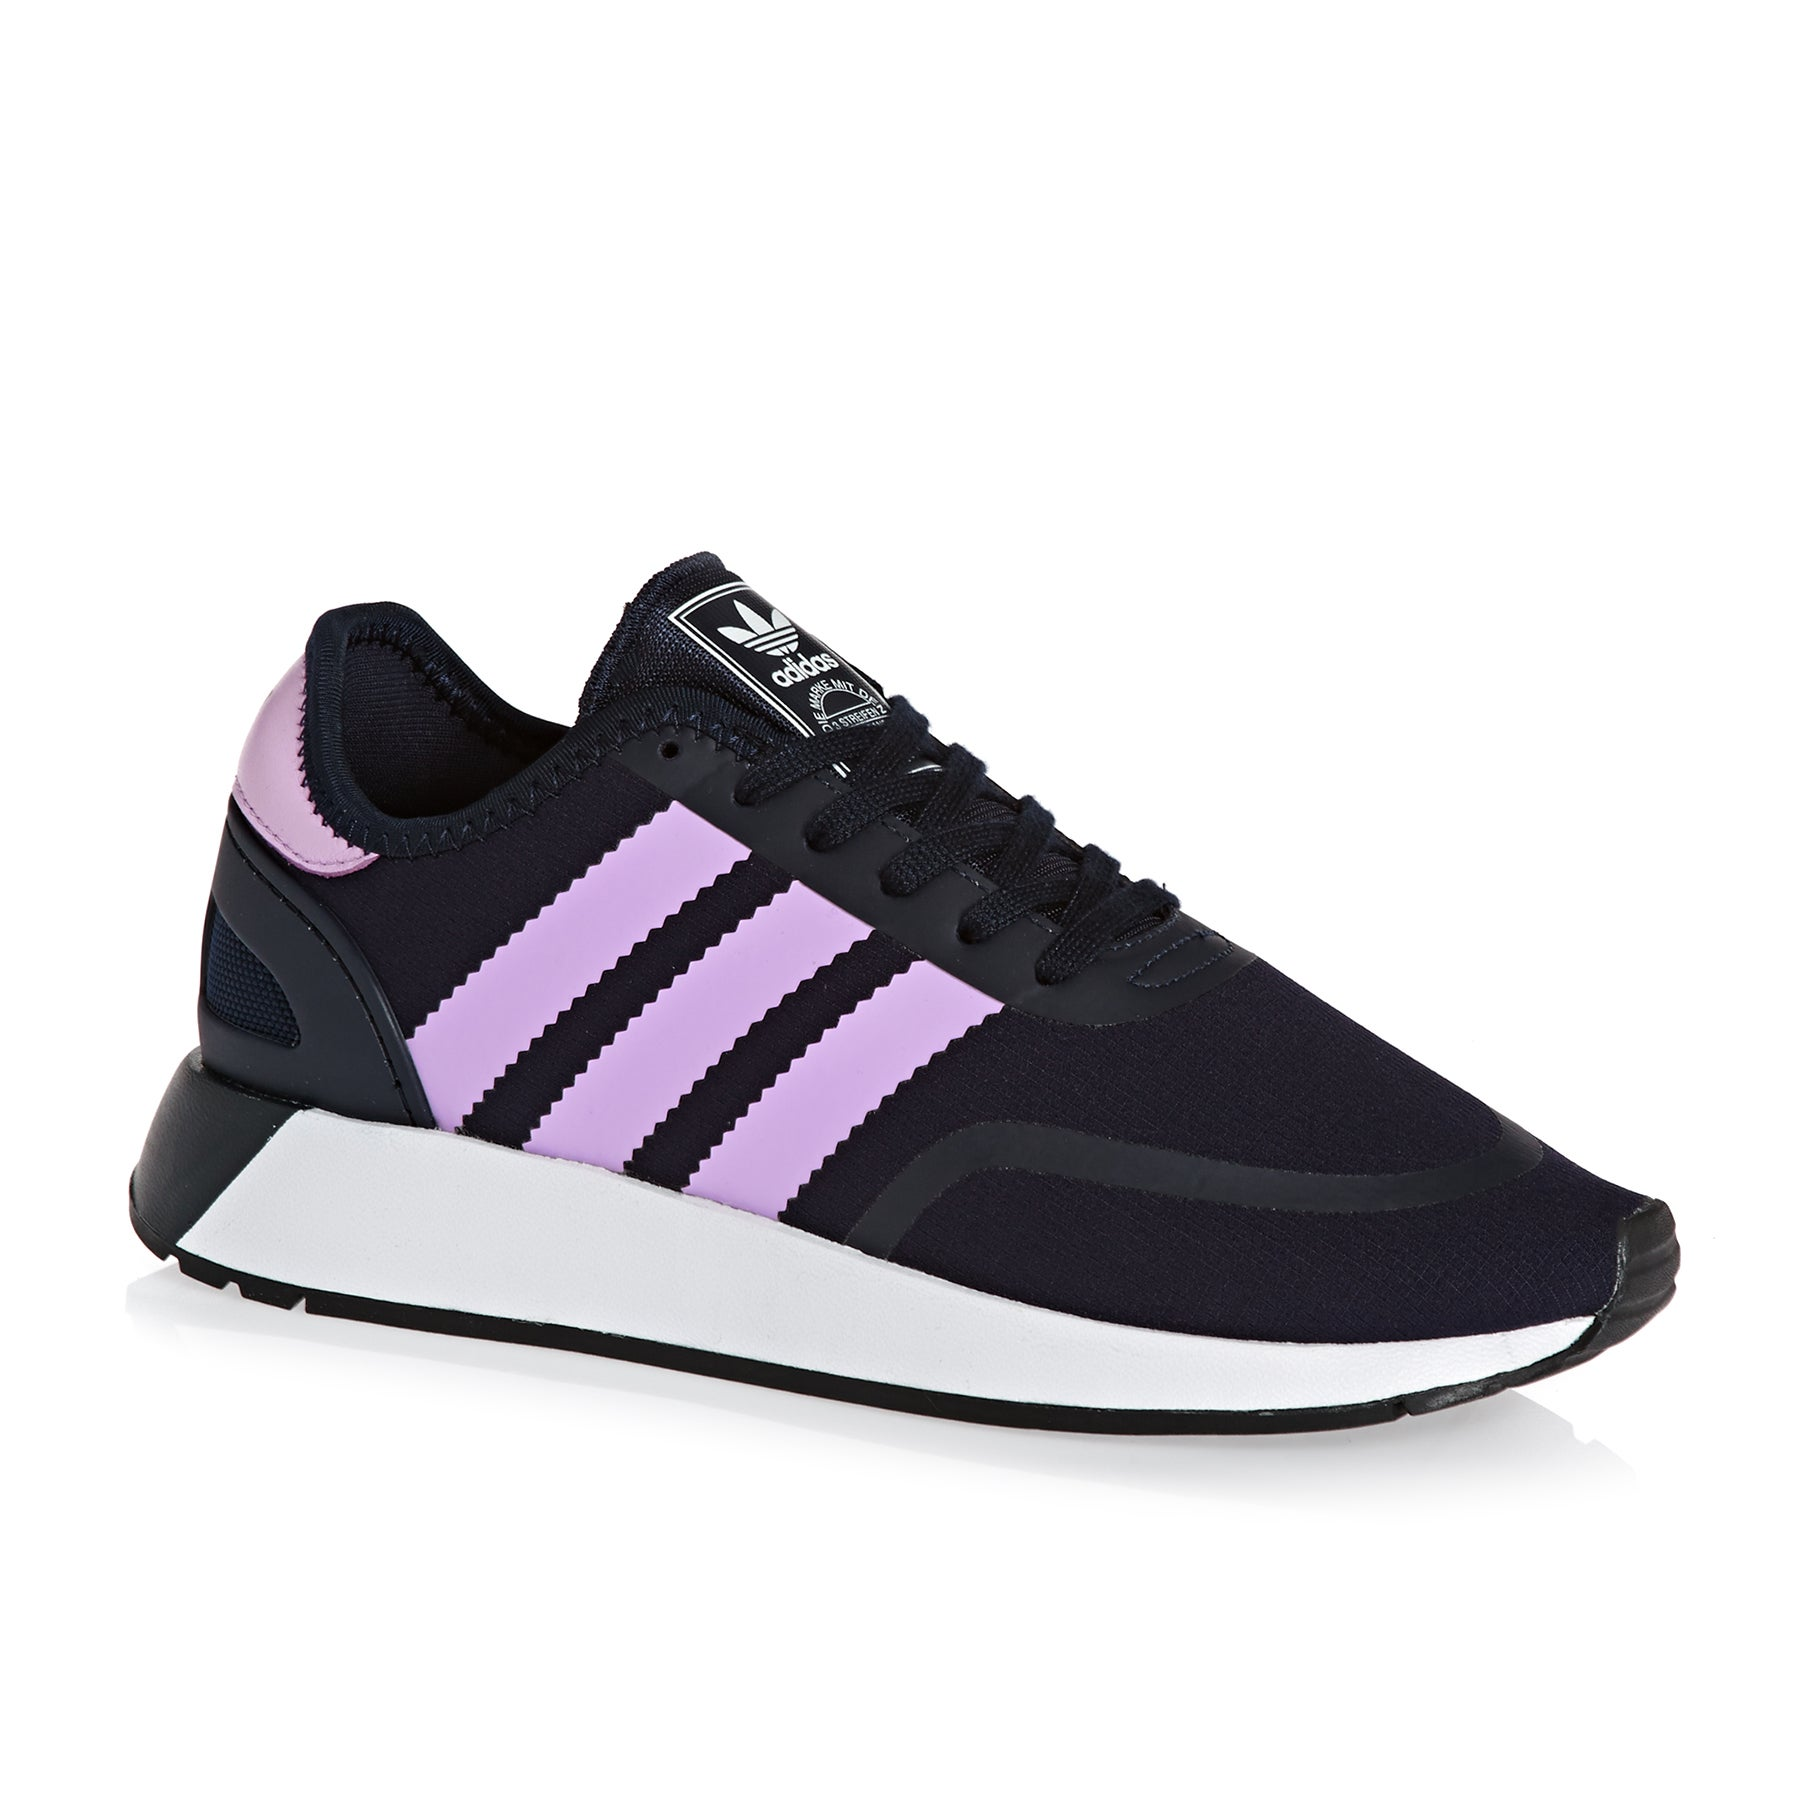 Adidas Originals N-5923 Womens Shoes - Legend Ink Clear Lilac White